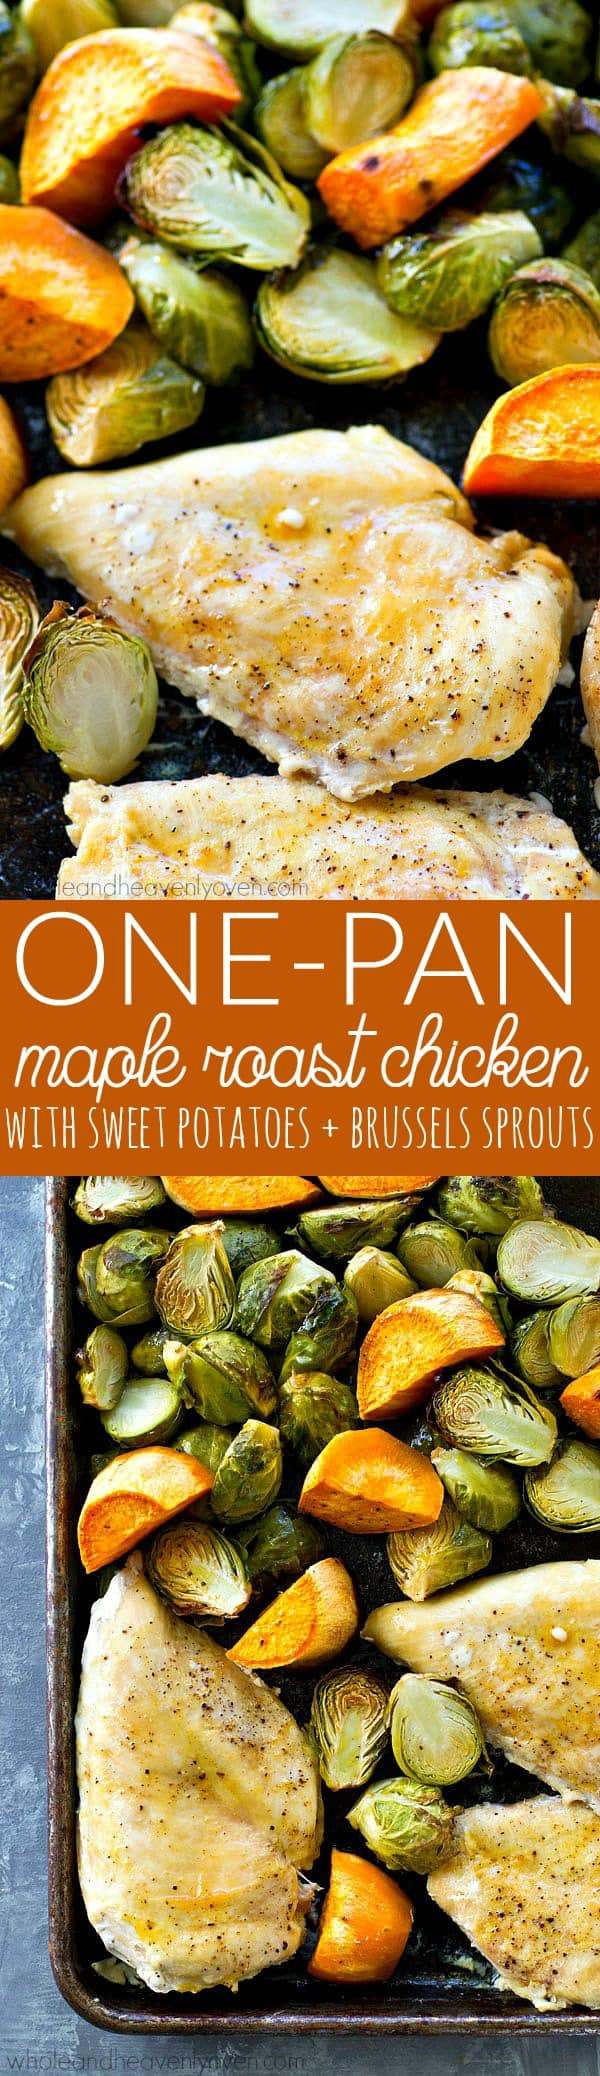 Juicy maple chicken, and tender sweet potatoes and brussels sprouts are are all roasted to perfection in ONE pan in less than an hour for an easy weeknight dinner with ZERO work involved!